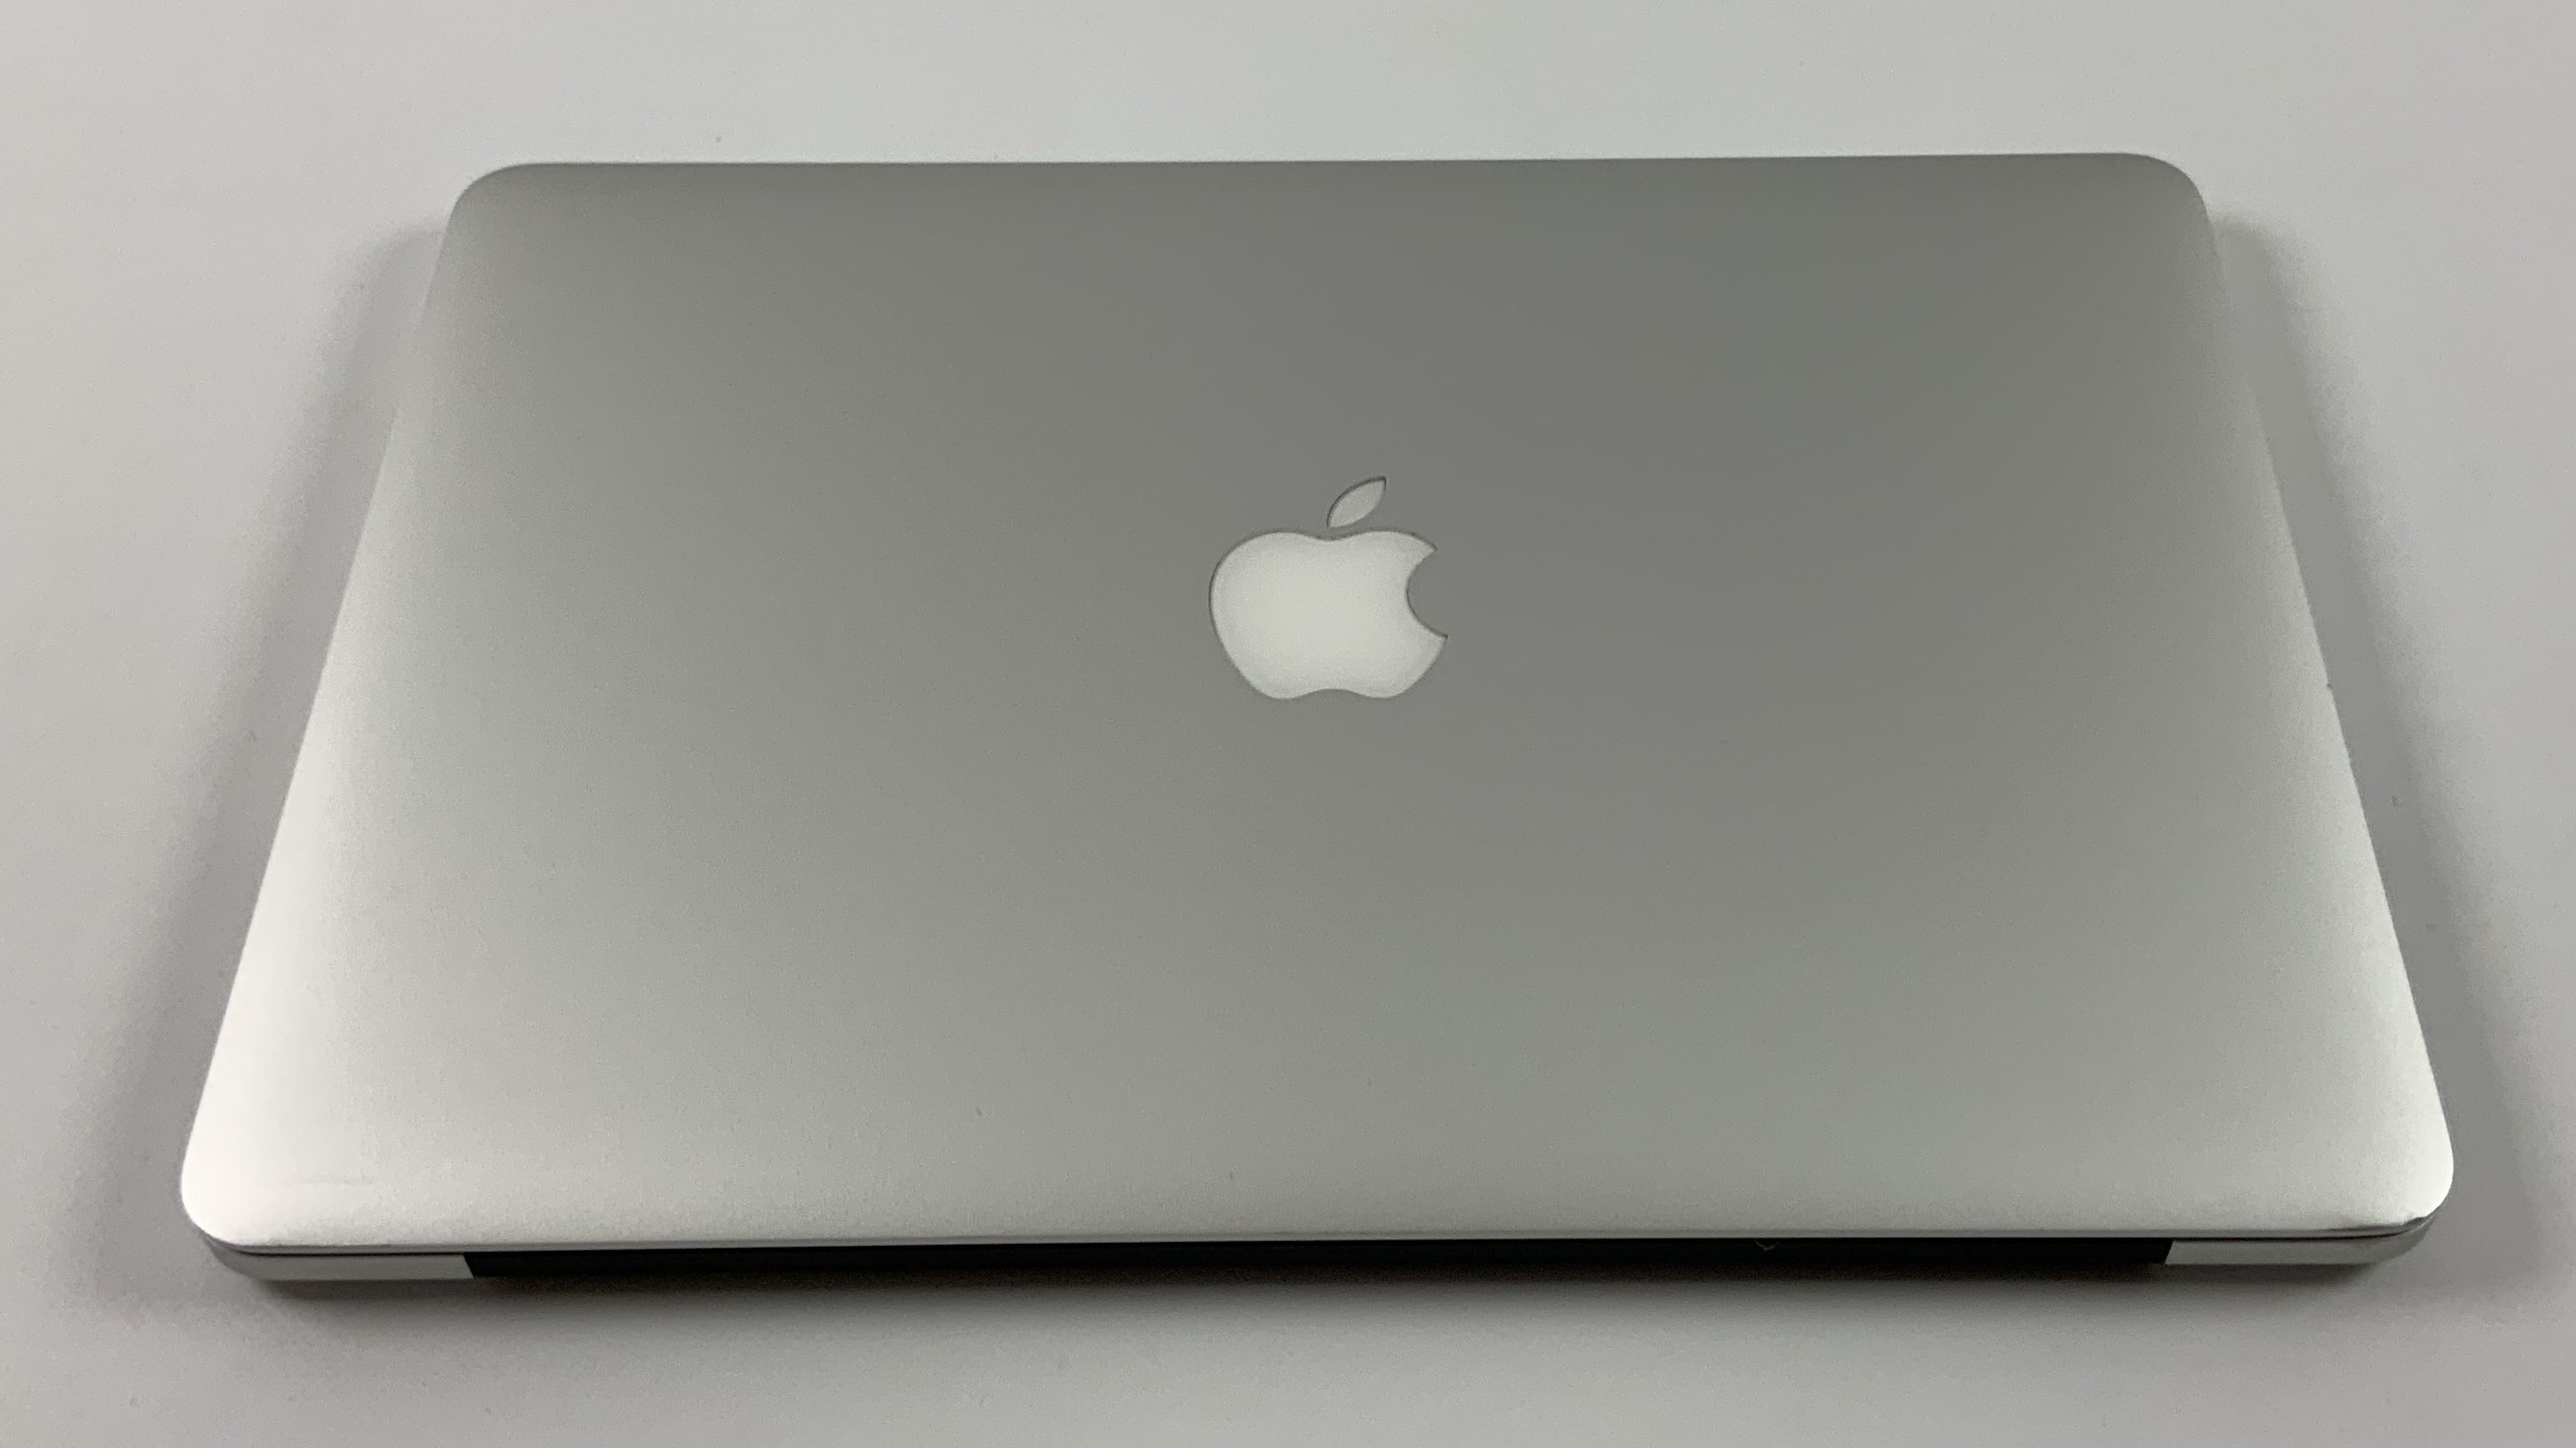 "MacBook Pro Retina 13"" Early 2015 (Intel Core i5 2.7 GHz 8 GB RAM 128 GB SSD), Intel Core i5 2.7 GHz, 8 GB RAM, 128 GB SSD, imagen 2"